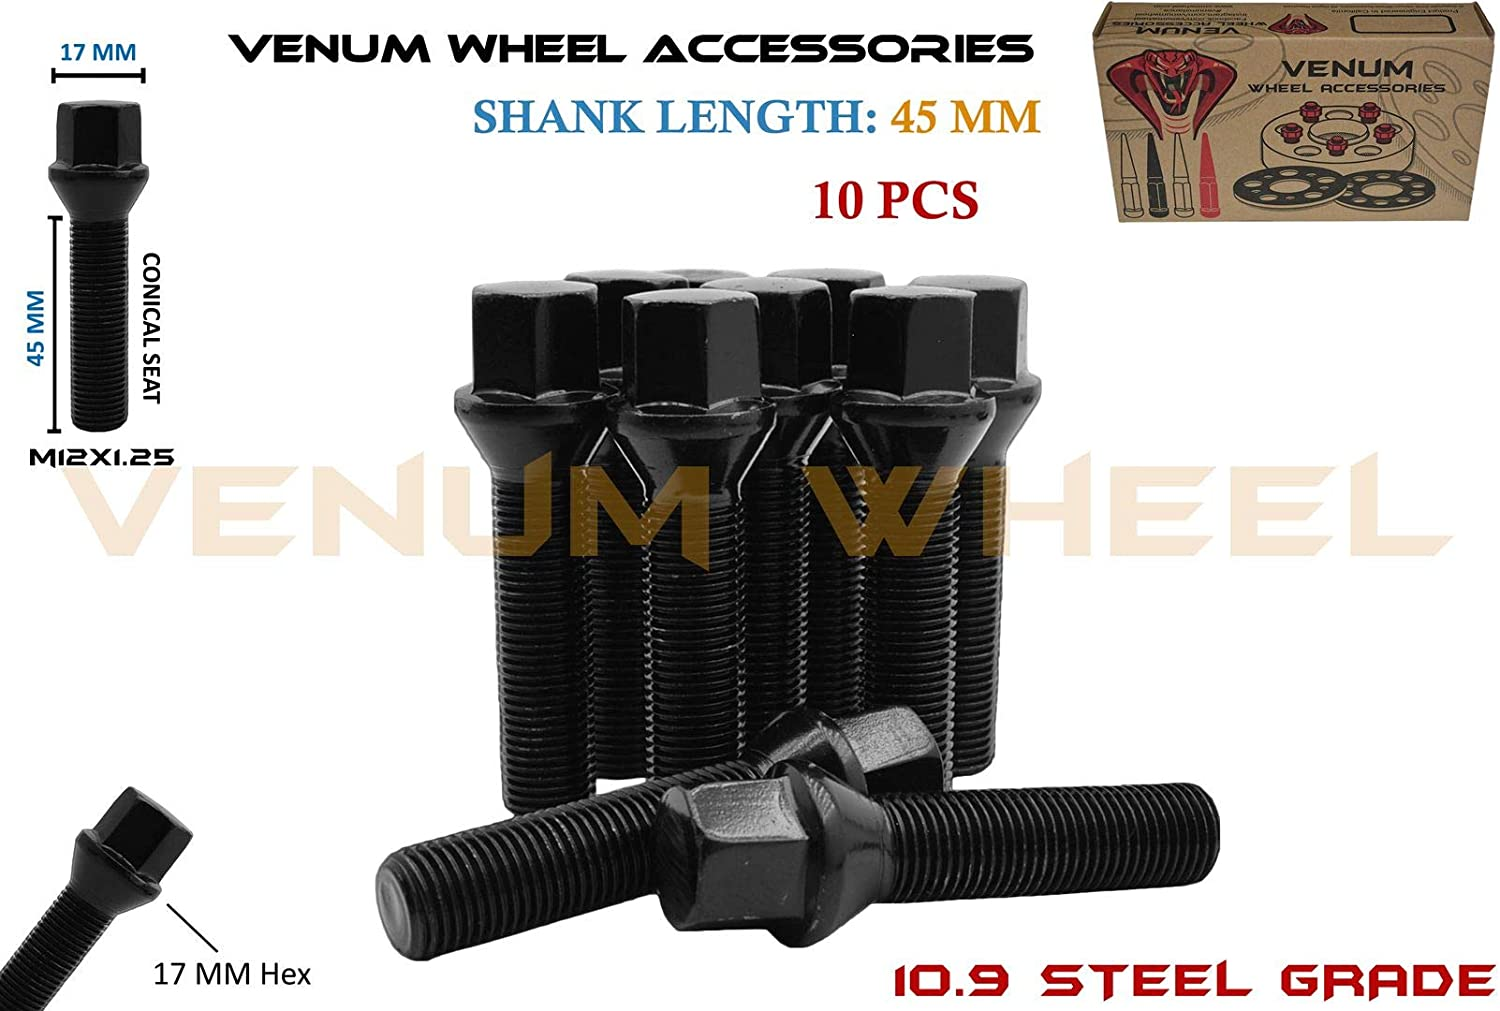 Venum wheel accessories 10Pc Black Powder Coated M12x1.25 Conical Seat Lug Bolts 45 MM Extended Shank Length Works with Jeep Fiat Dodge Chrysler Alfa Romeo Factory & Aftermarket Wheels